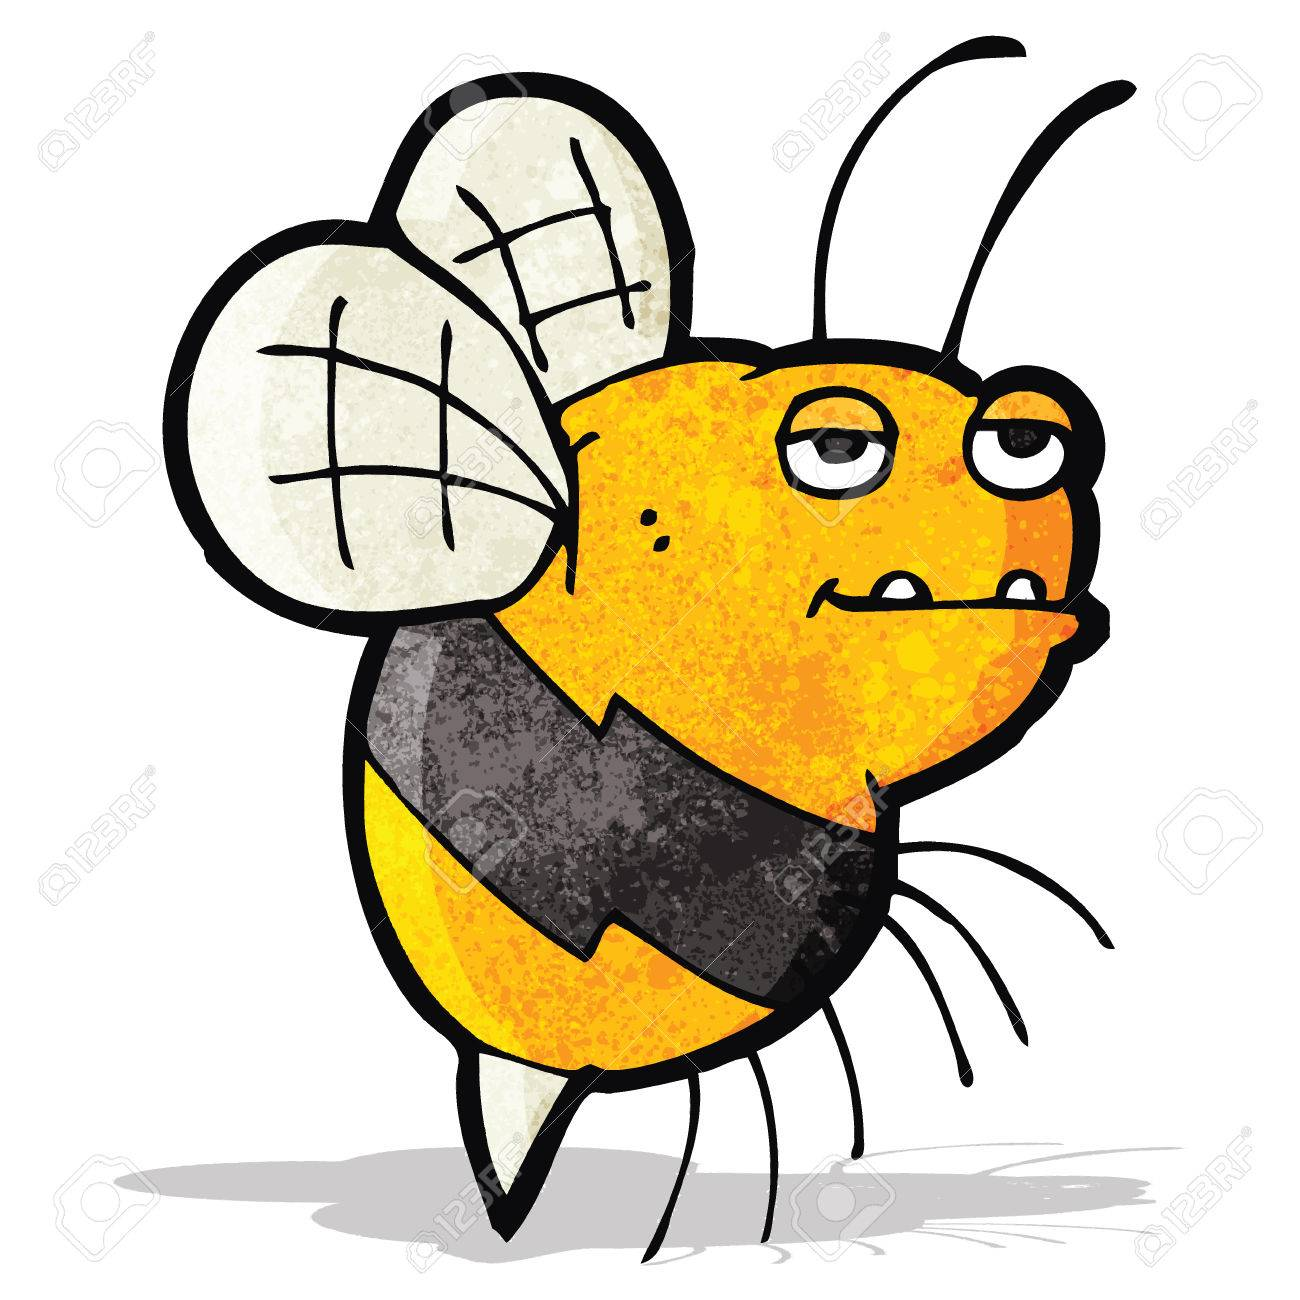 cartoon fat bumble bee royalty free cliparts vectors and stock rh 123rf com free bumble bee cartoon picture Bumble Bee Border